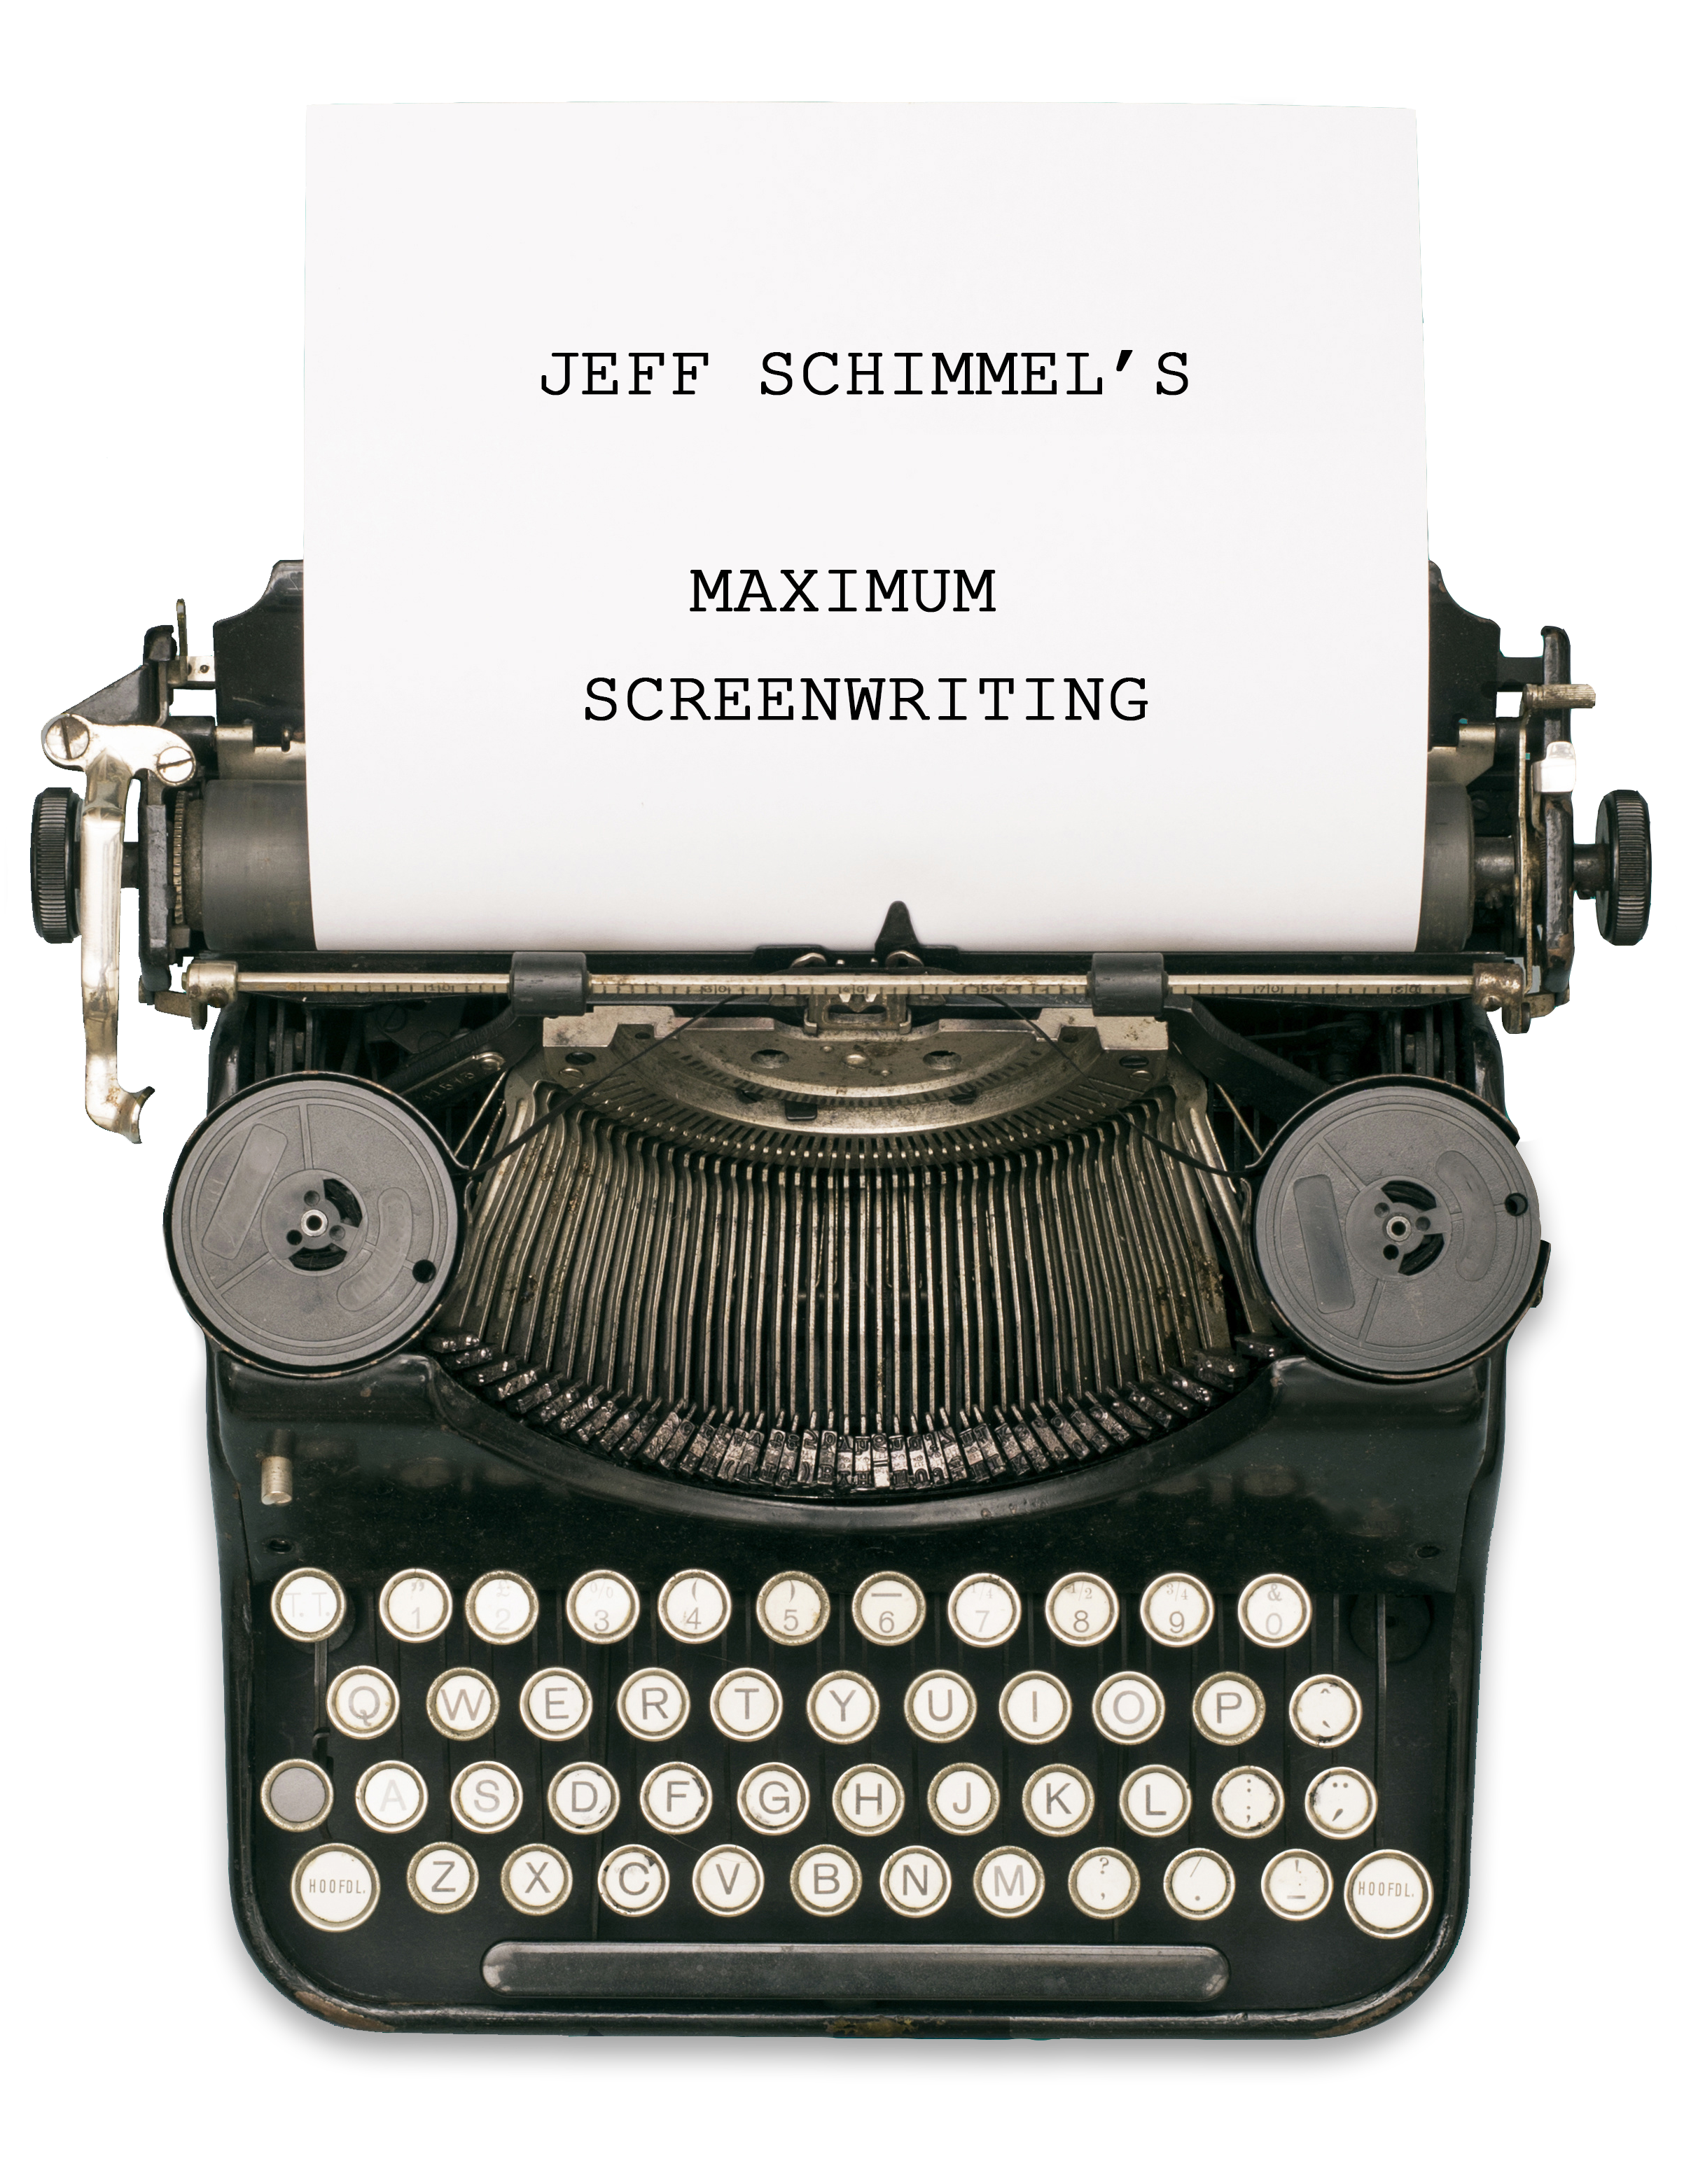 Jeff-Schimmel-Maximum-Screenwriting-Typewriter.png